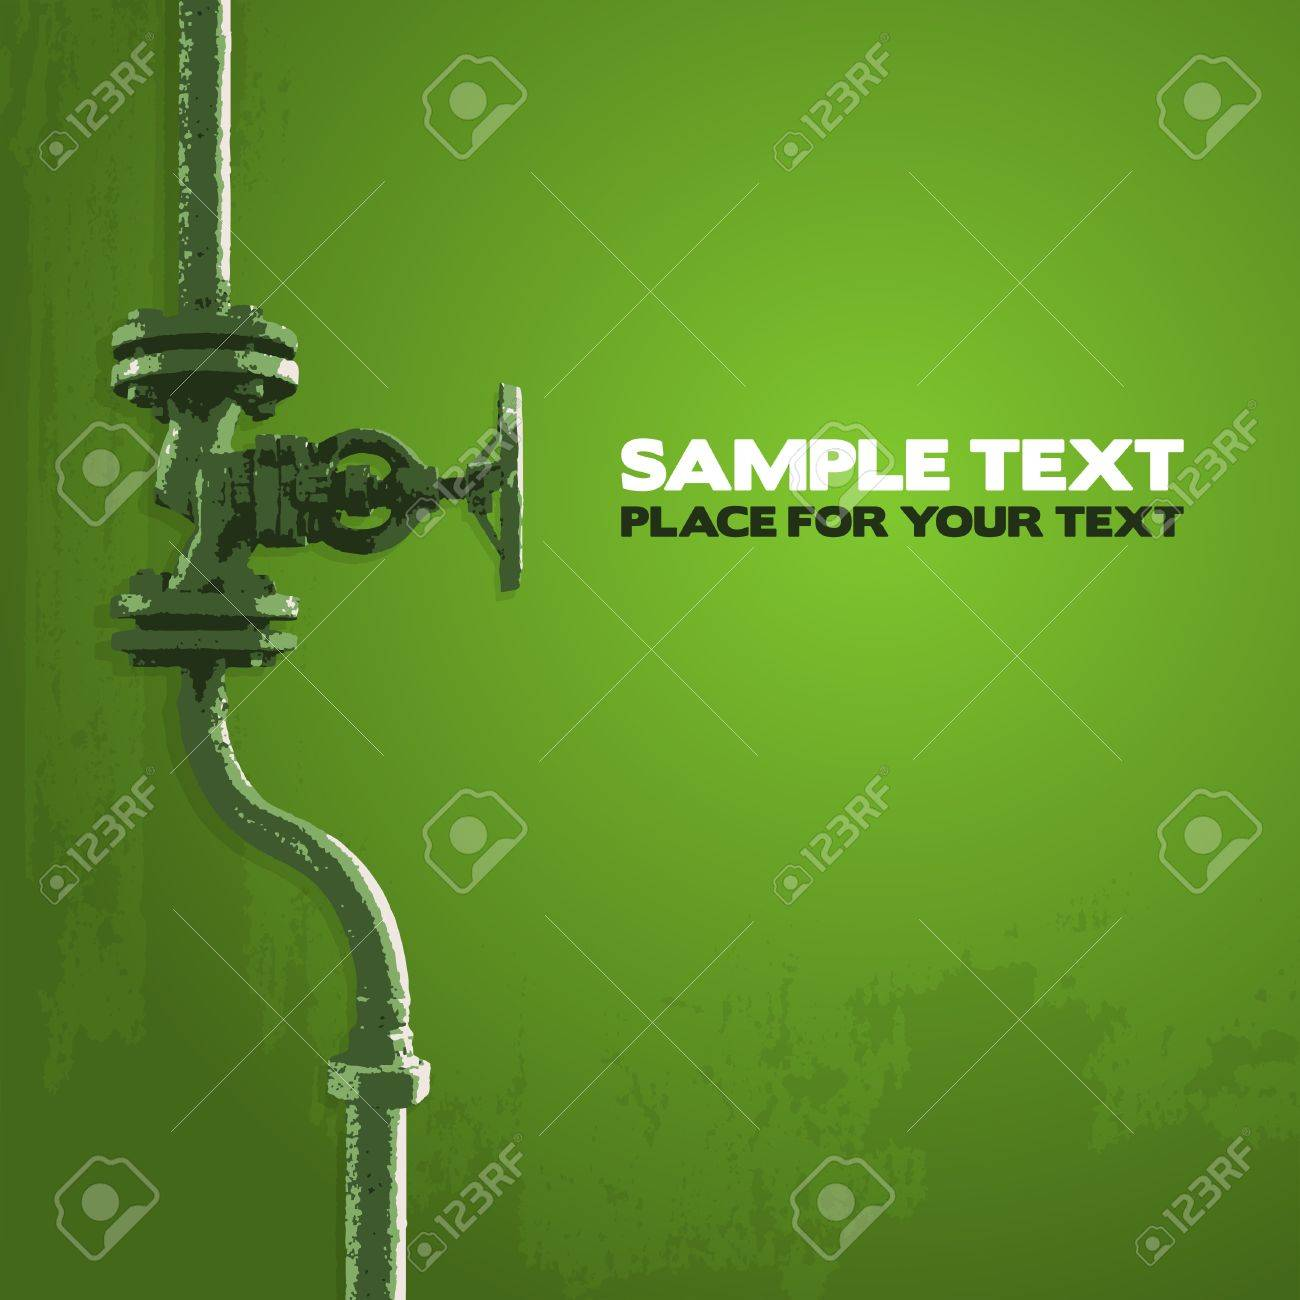 Old valve, illustration in shades of green Stock Vector - 17308792